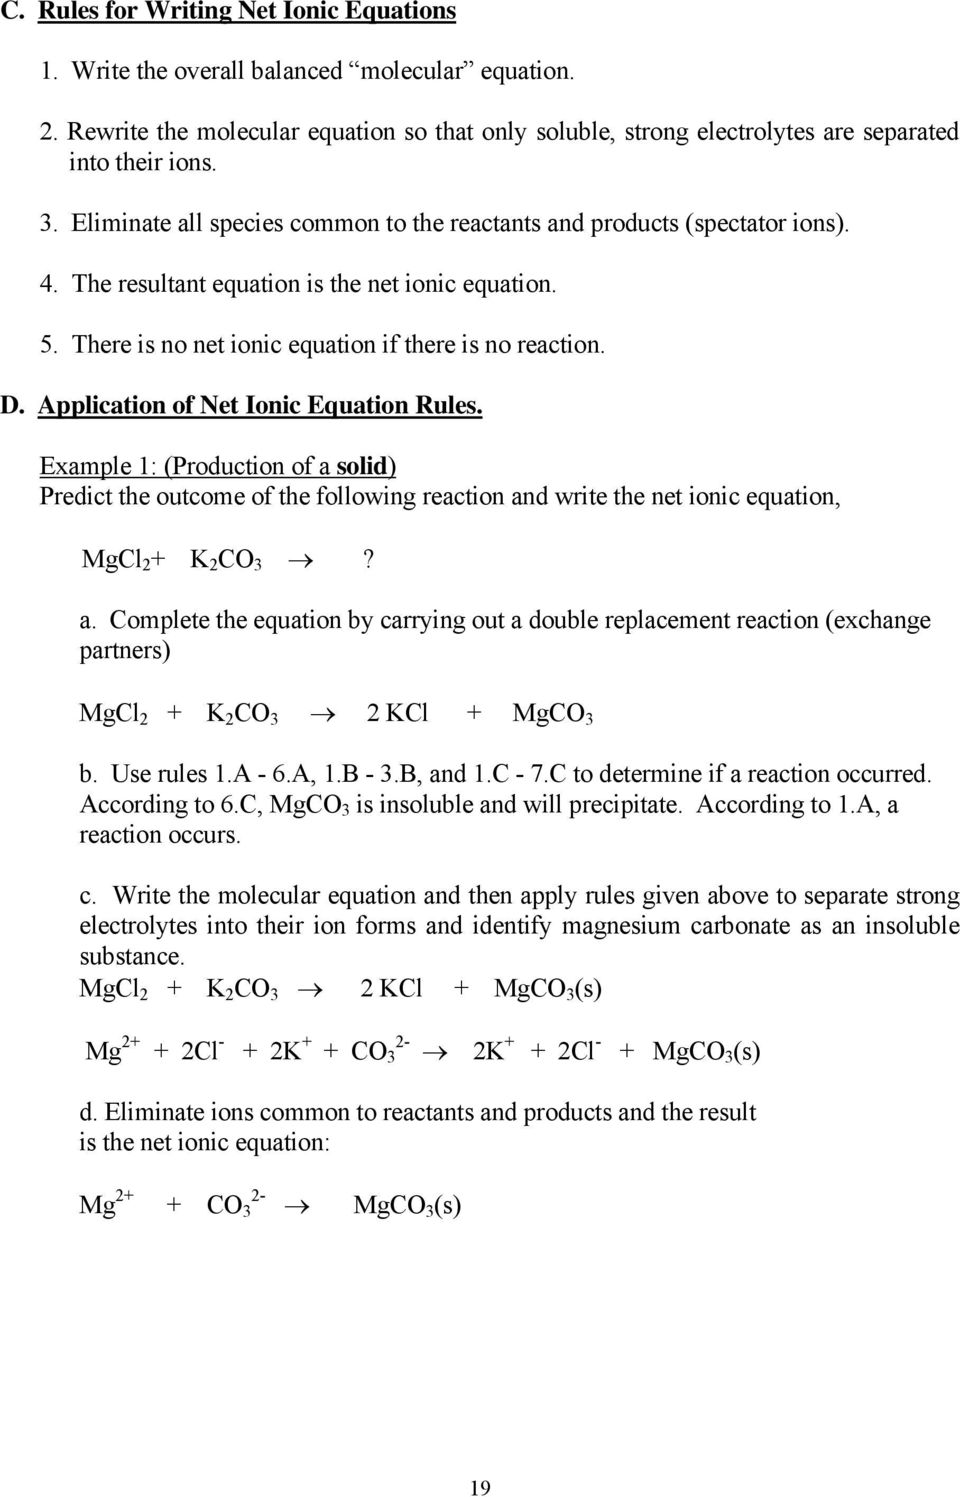 Application of Net Ionic Equation Rules. Example 1: (Production of a solid) Predict the outcome of the following reaction and write the net ionic equation, MgCl 2 + K 2 CO 3? a. Complete the equation by carrying out a double replacement reaction (exchange partners) MgCl 2 + K 2 CO 3 2 KCl + MgCO 3 b.